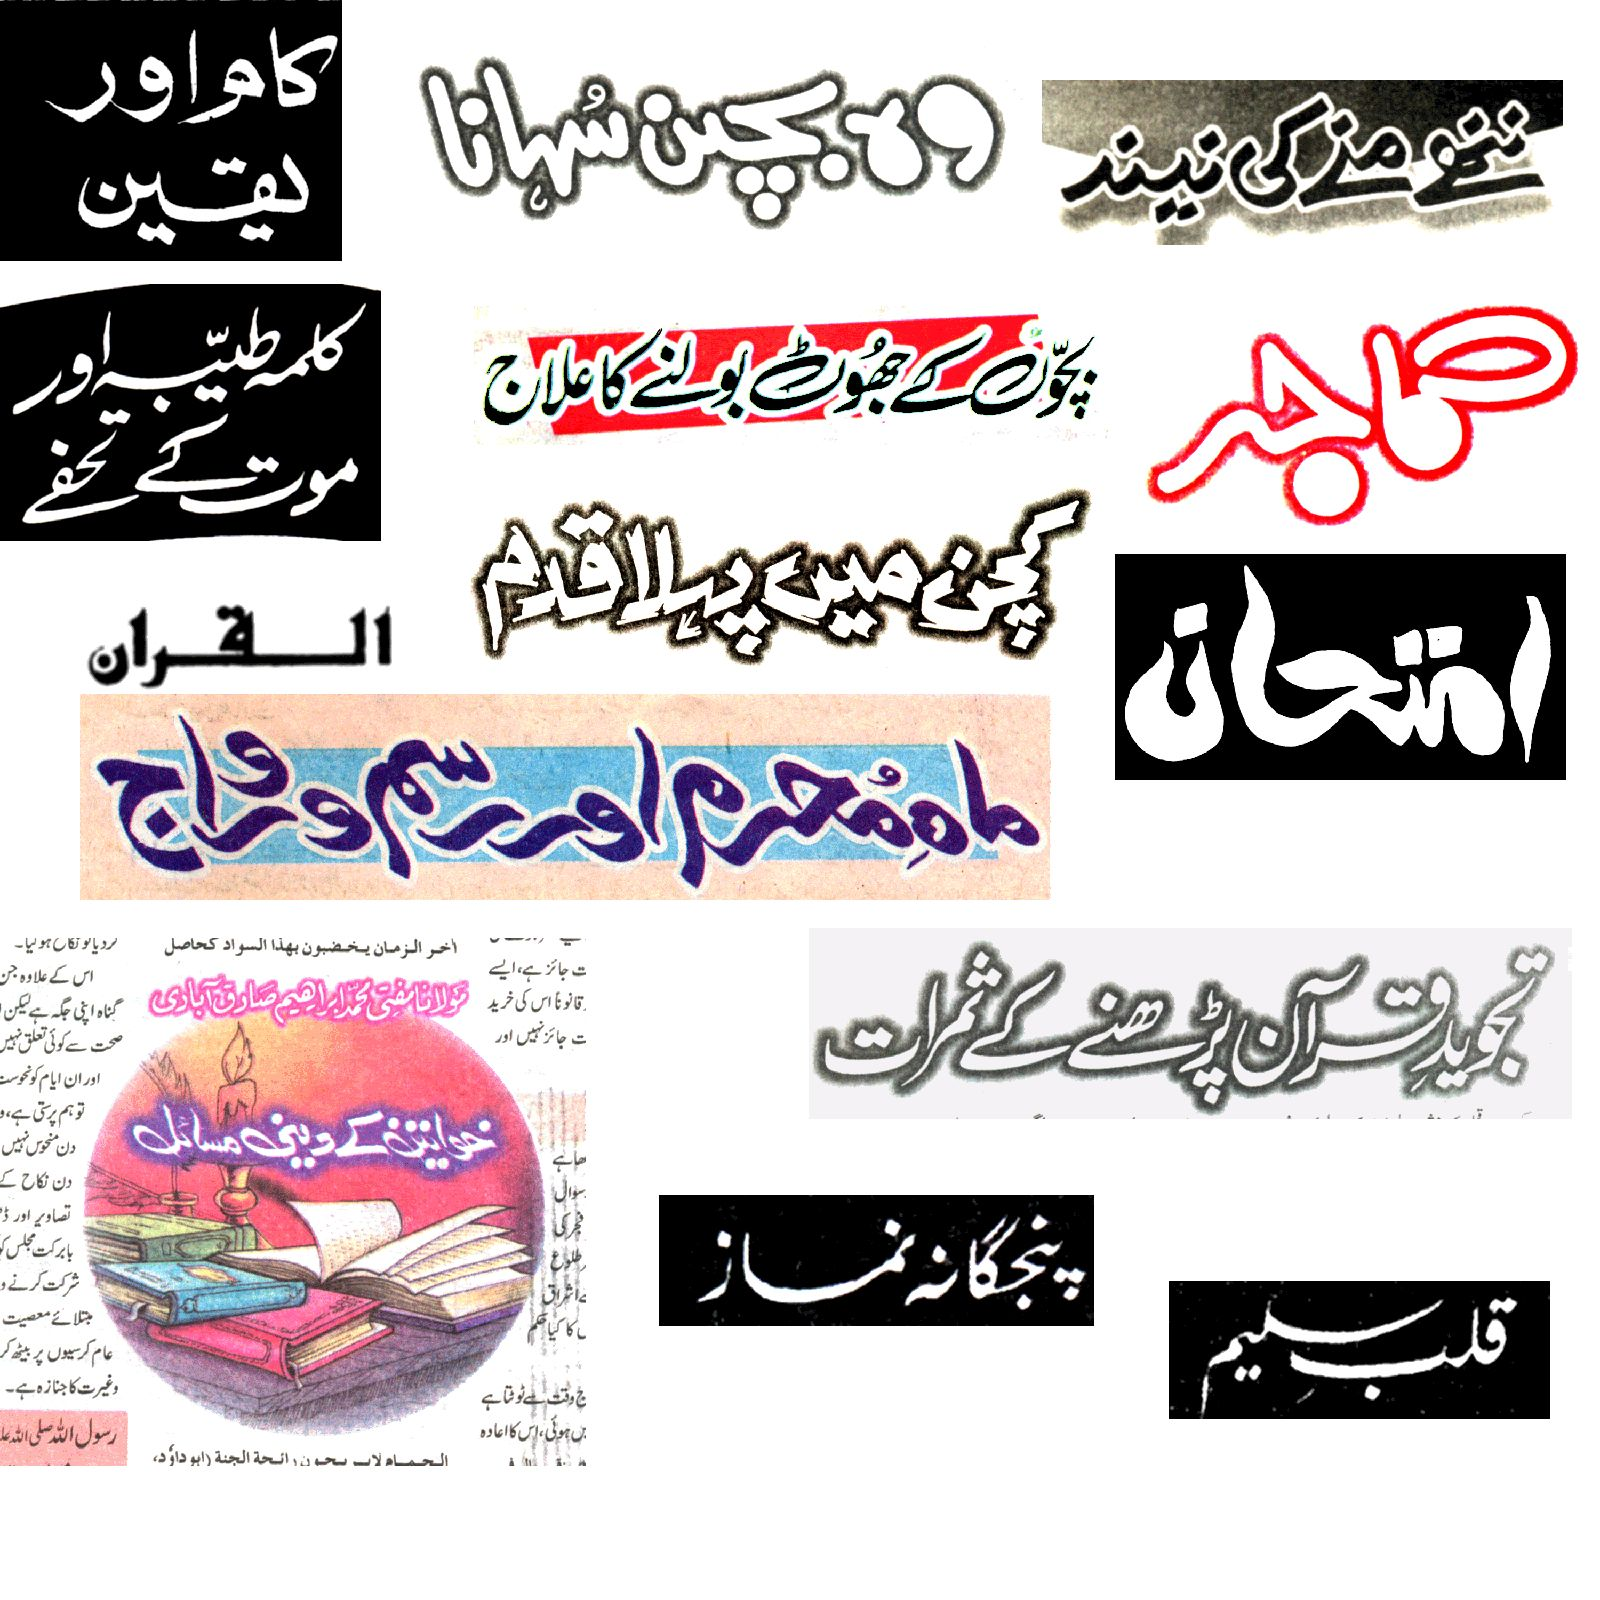 Urdu Calligraphy Font Free Download Urdu Fonts Fonts Fonts Arabic Calligraphy Caligraphy